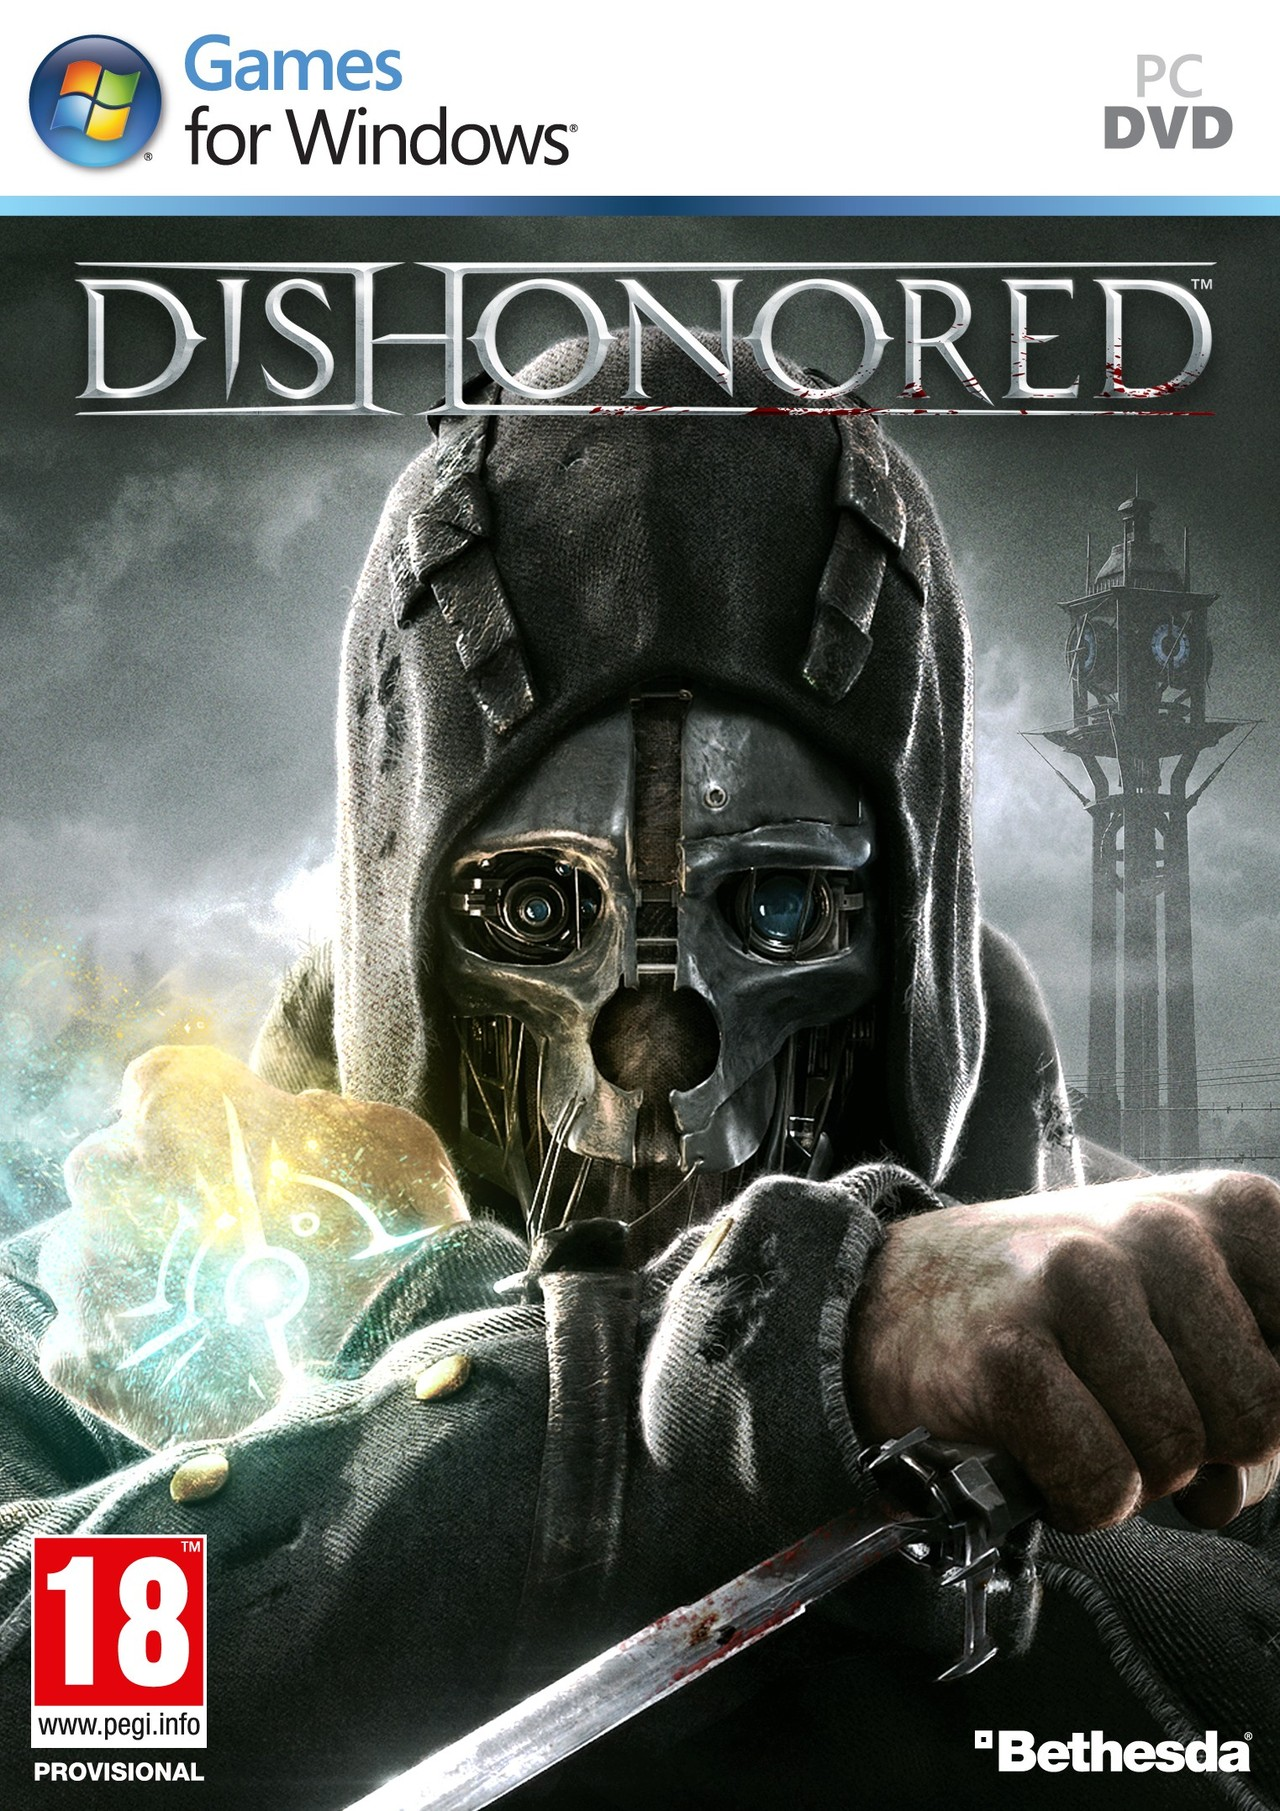 Dishnored PC [Post-Mortem] VOSTFR